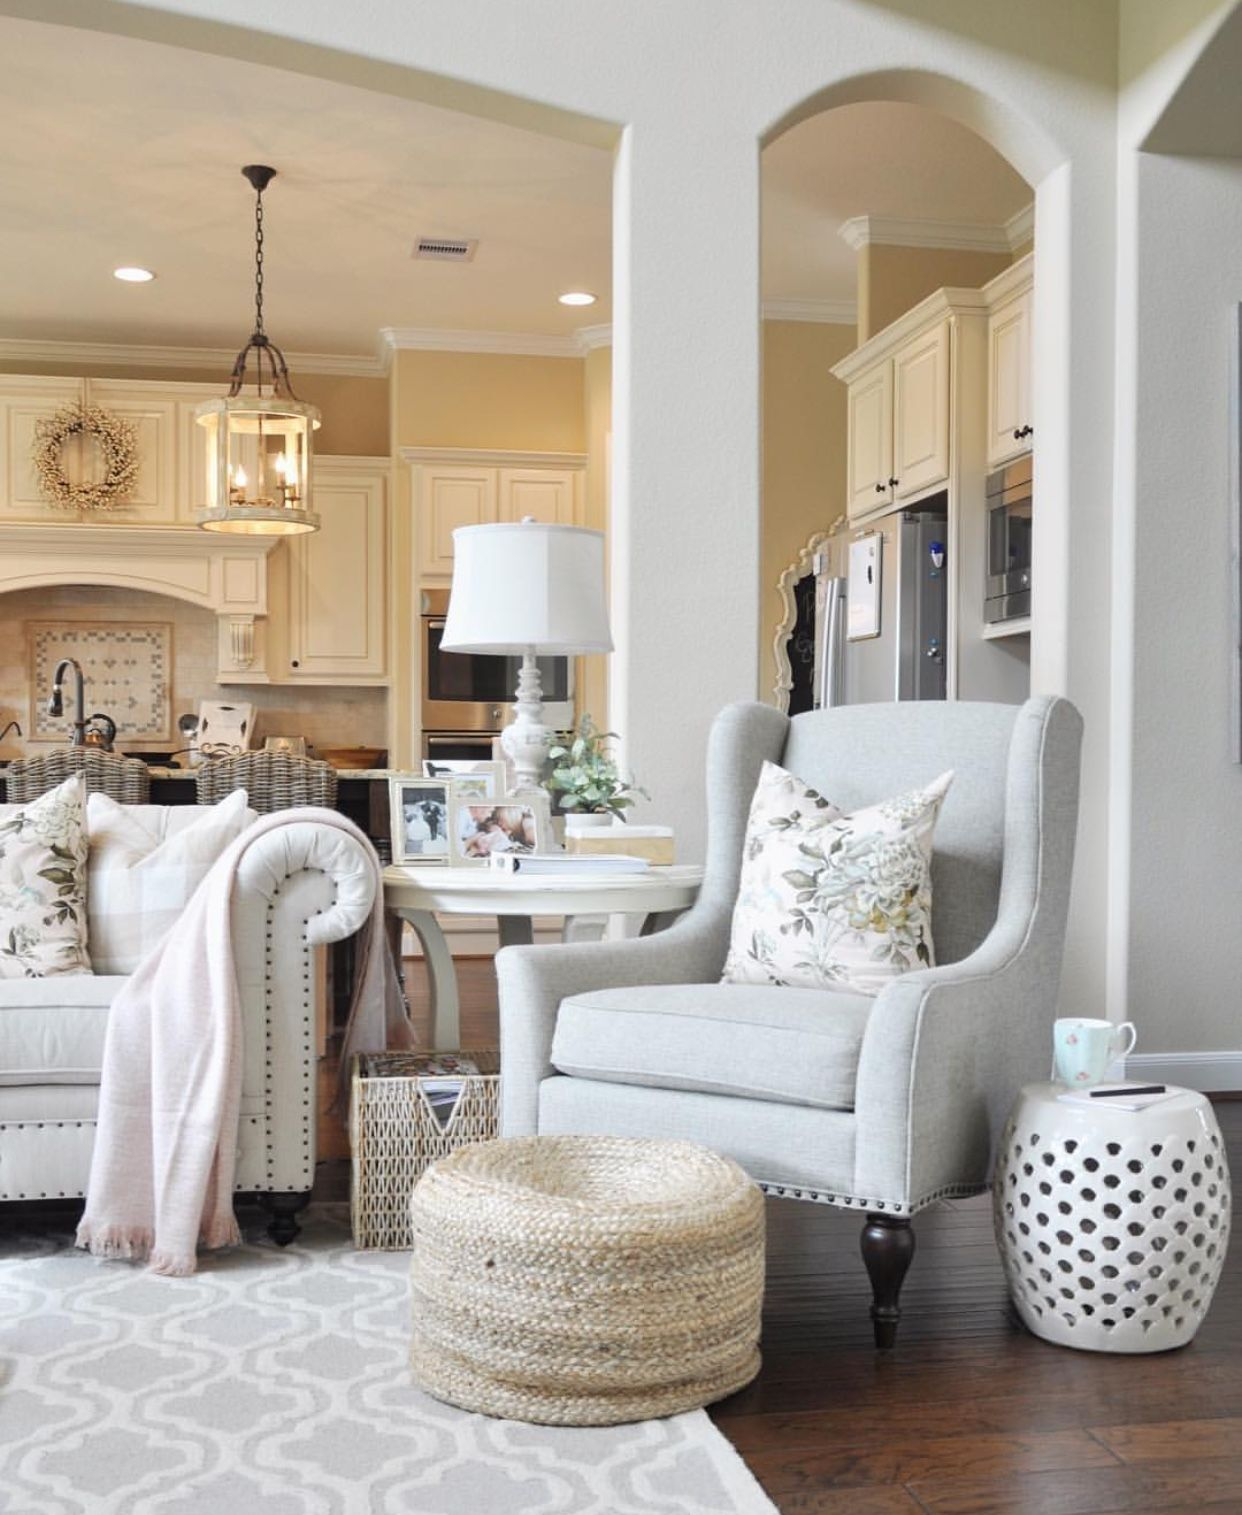 Pin By Christine Elphinstone On Country Dream Home Home